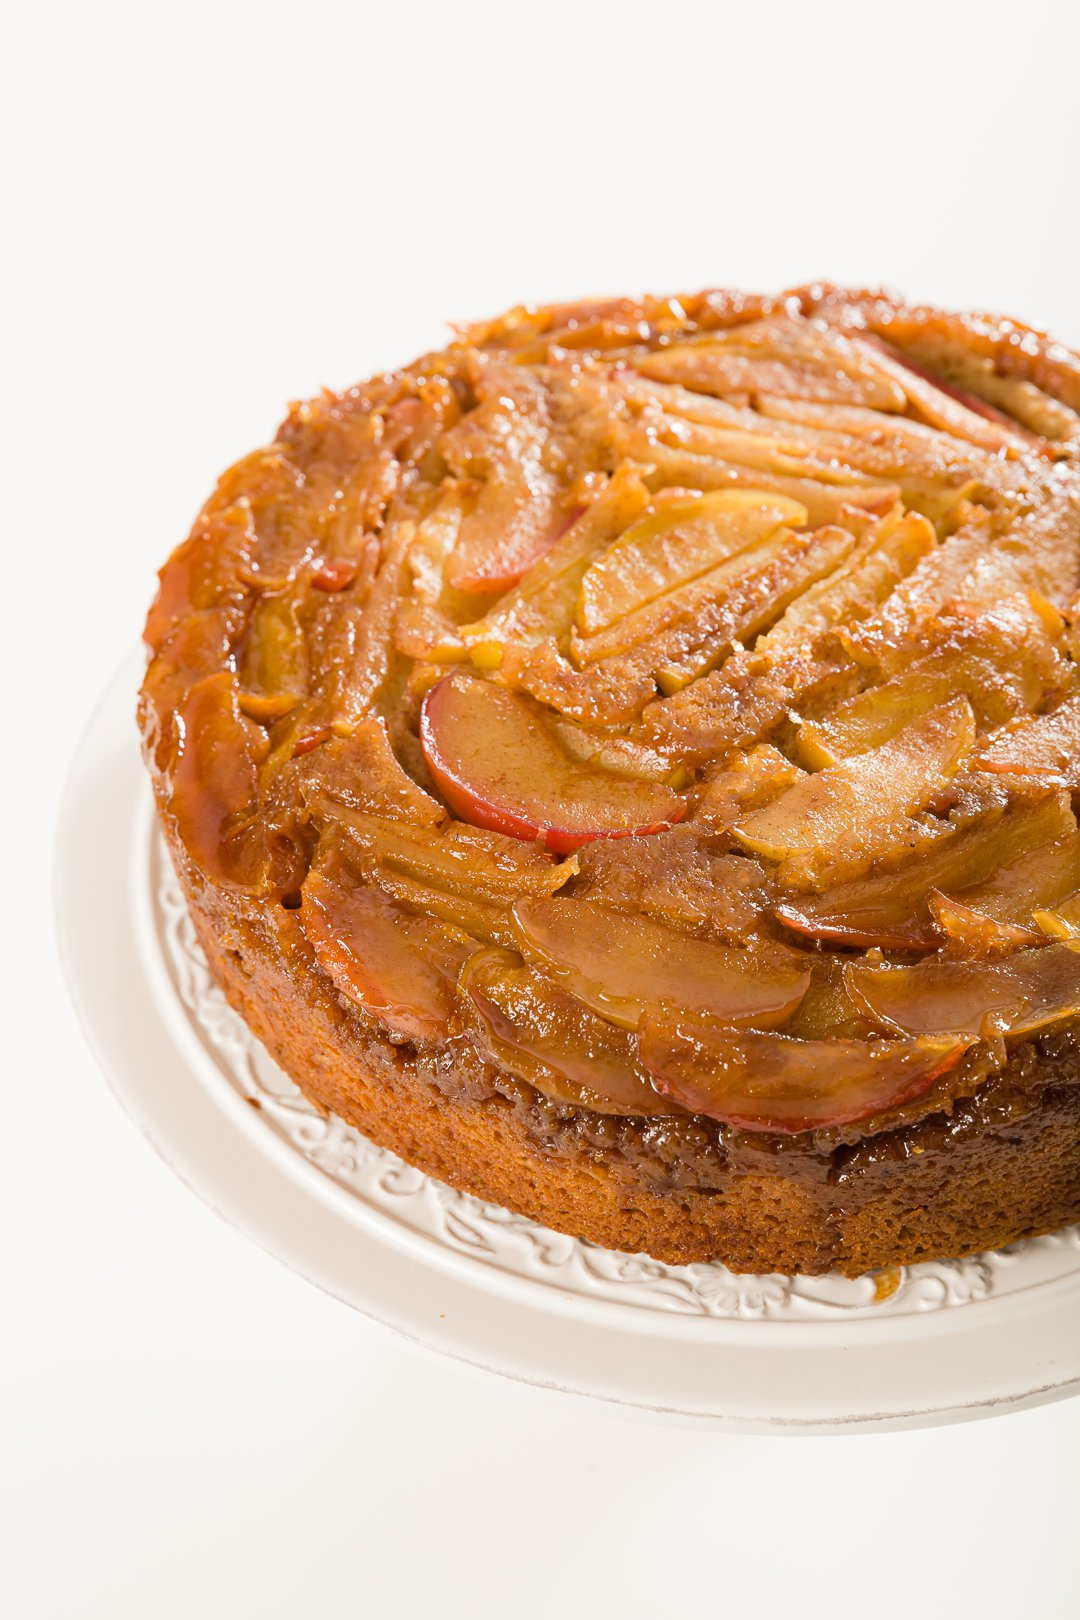 Apple upside-down cake unsliced